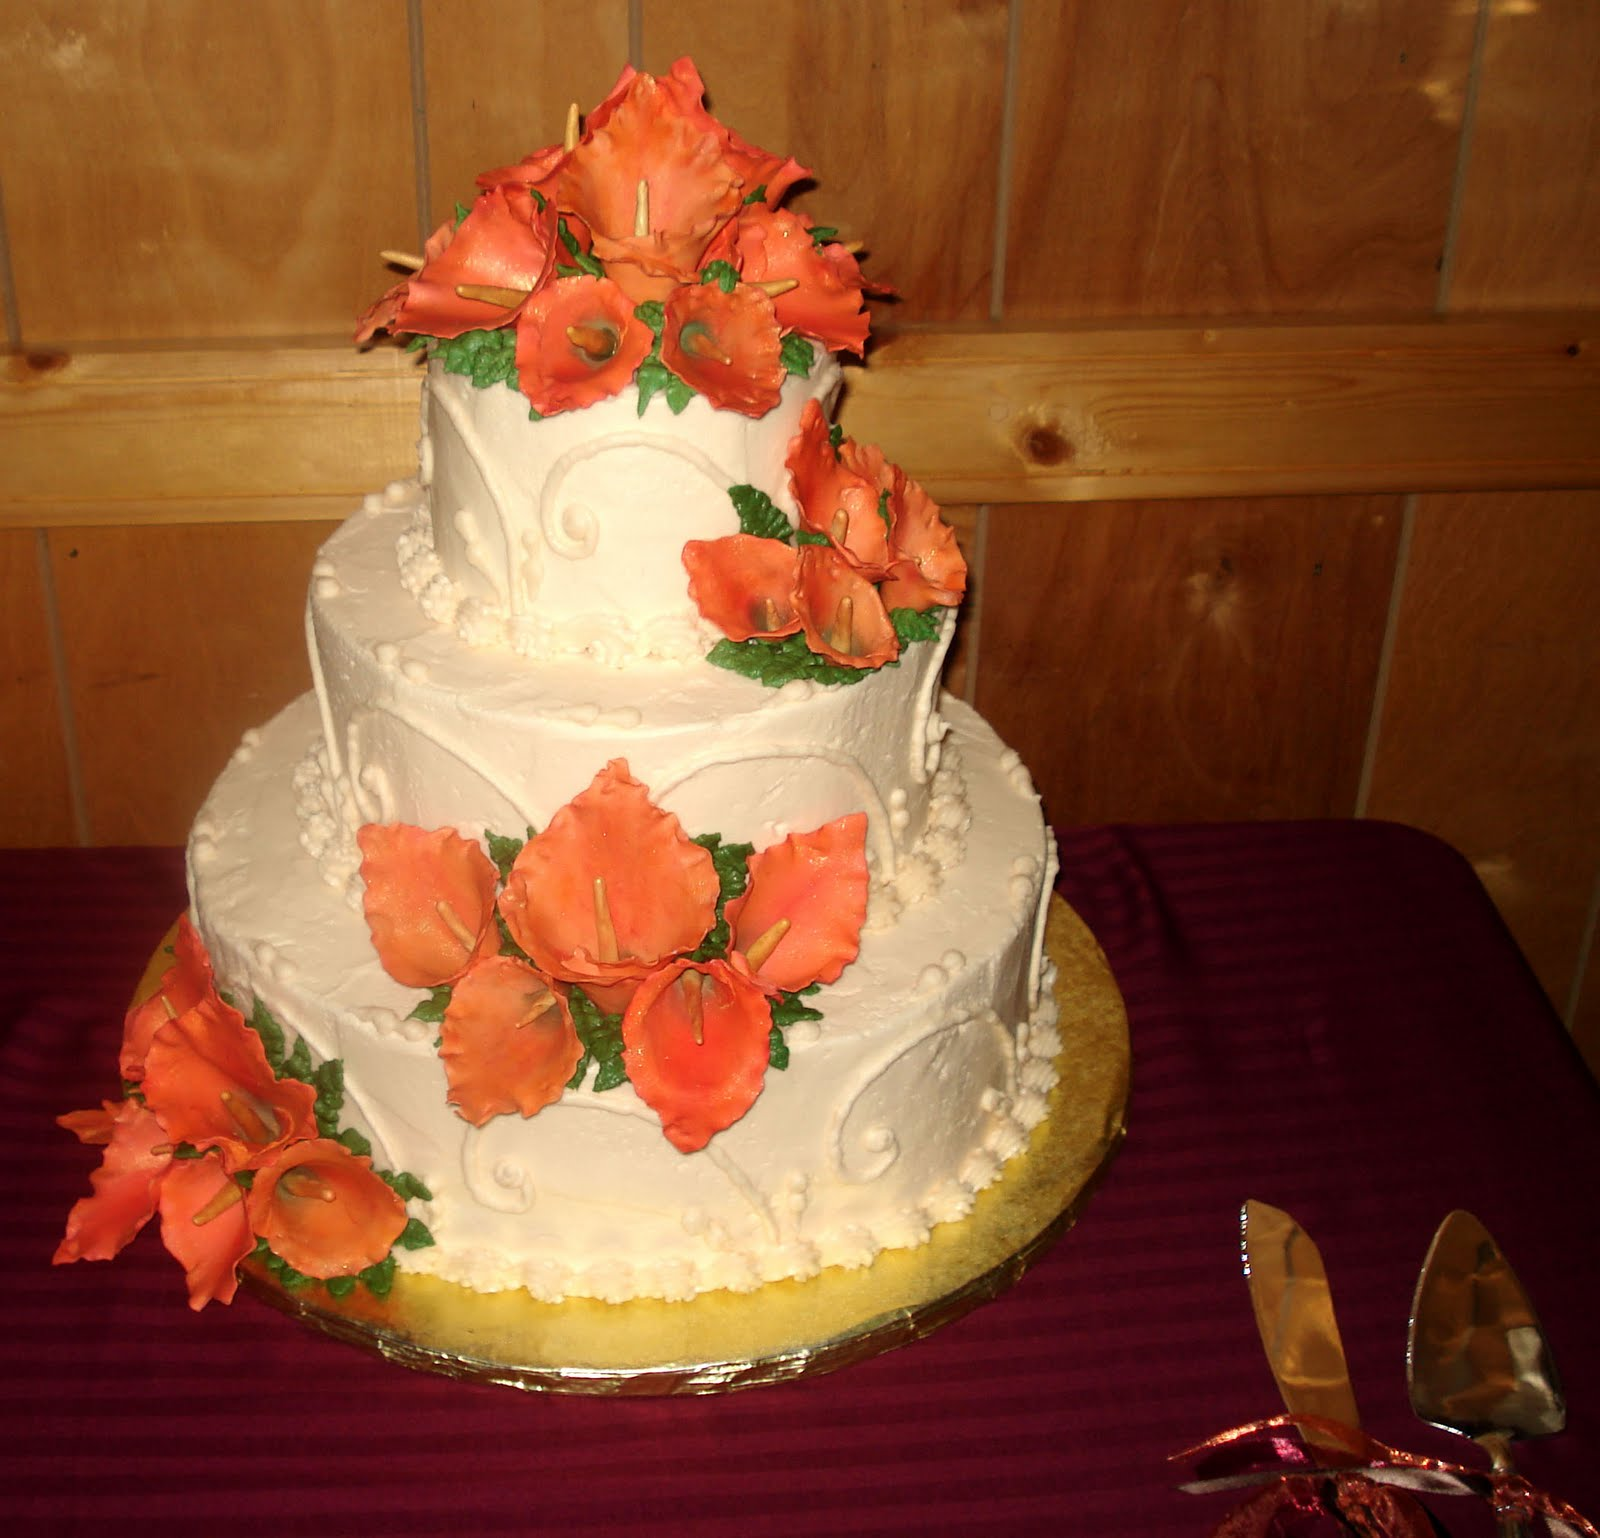 The wedding used fall colors.